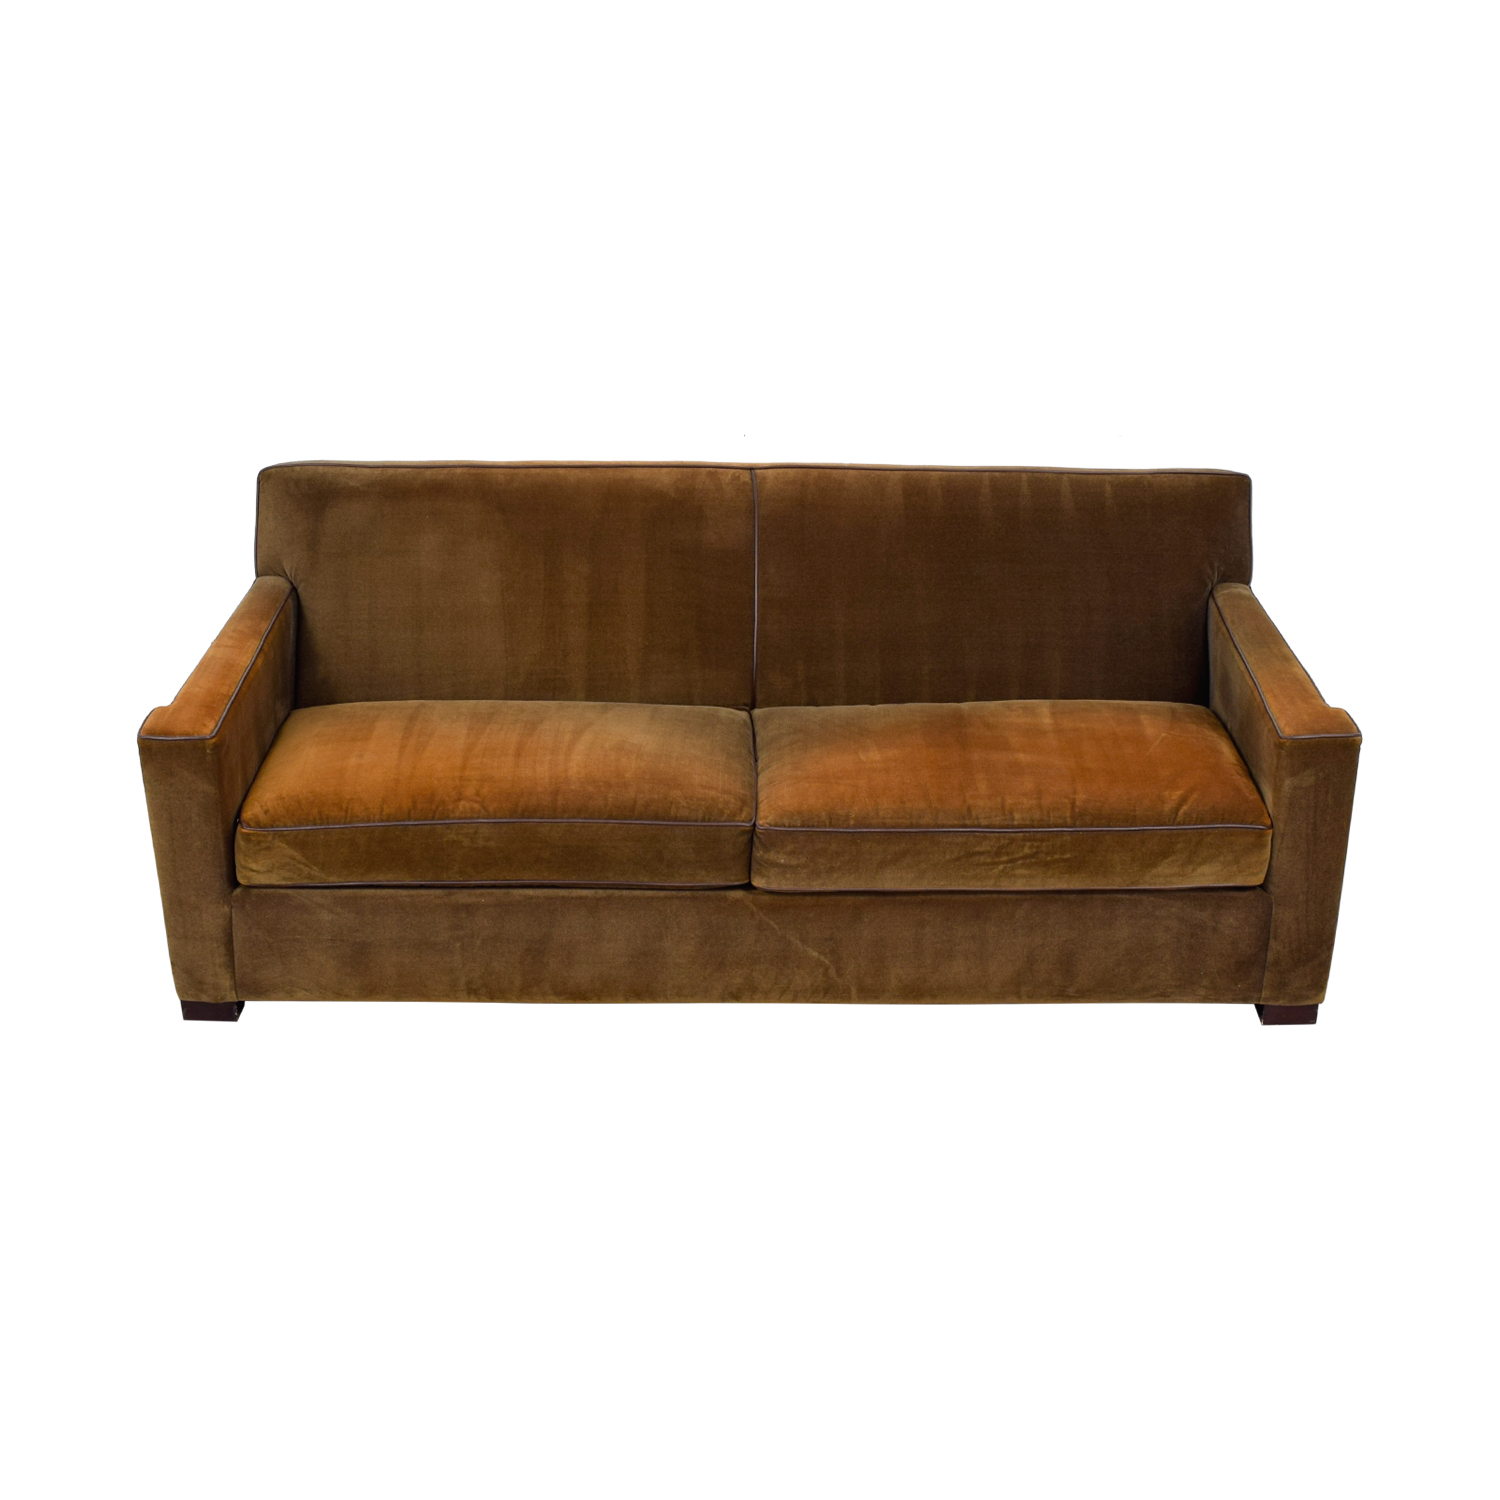 buy Crate & Barrel Crate & Barrel Chocolate Brown Sofa online